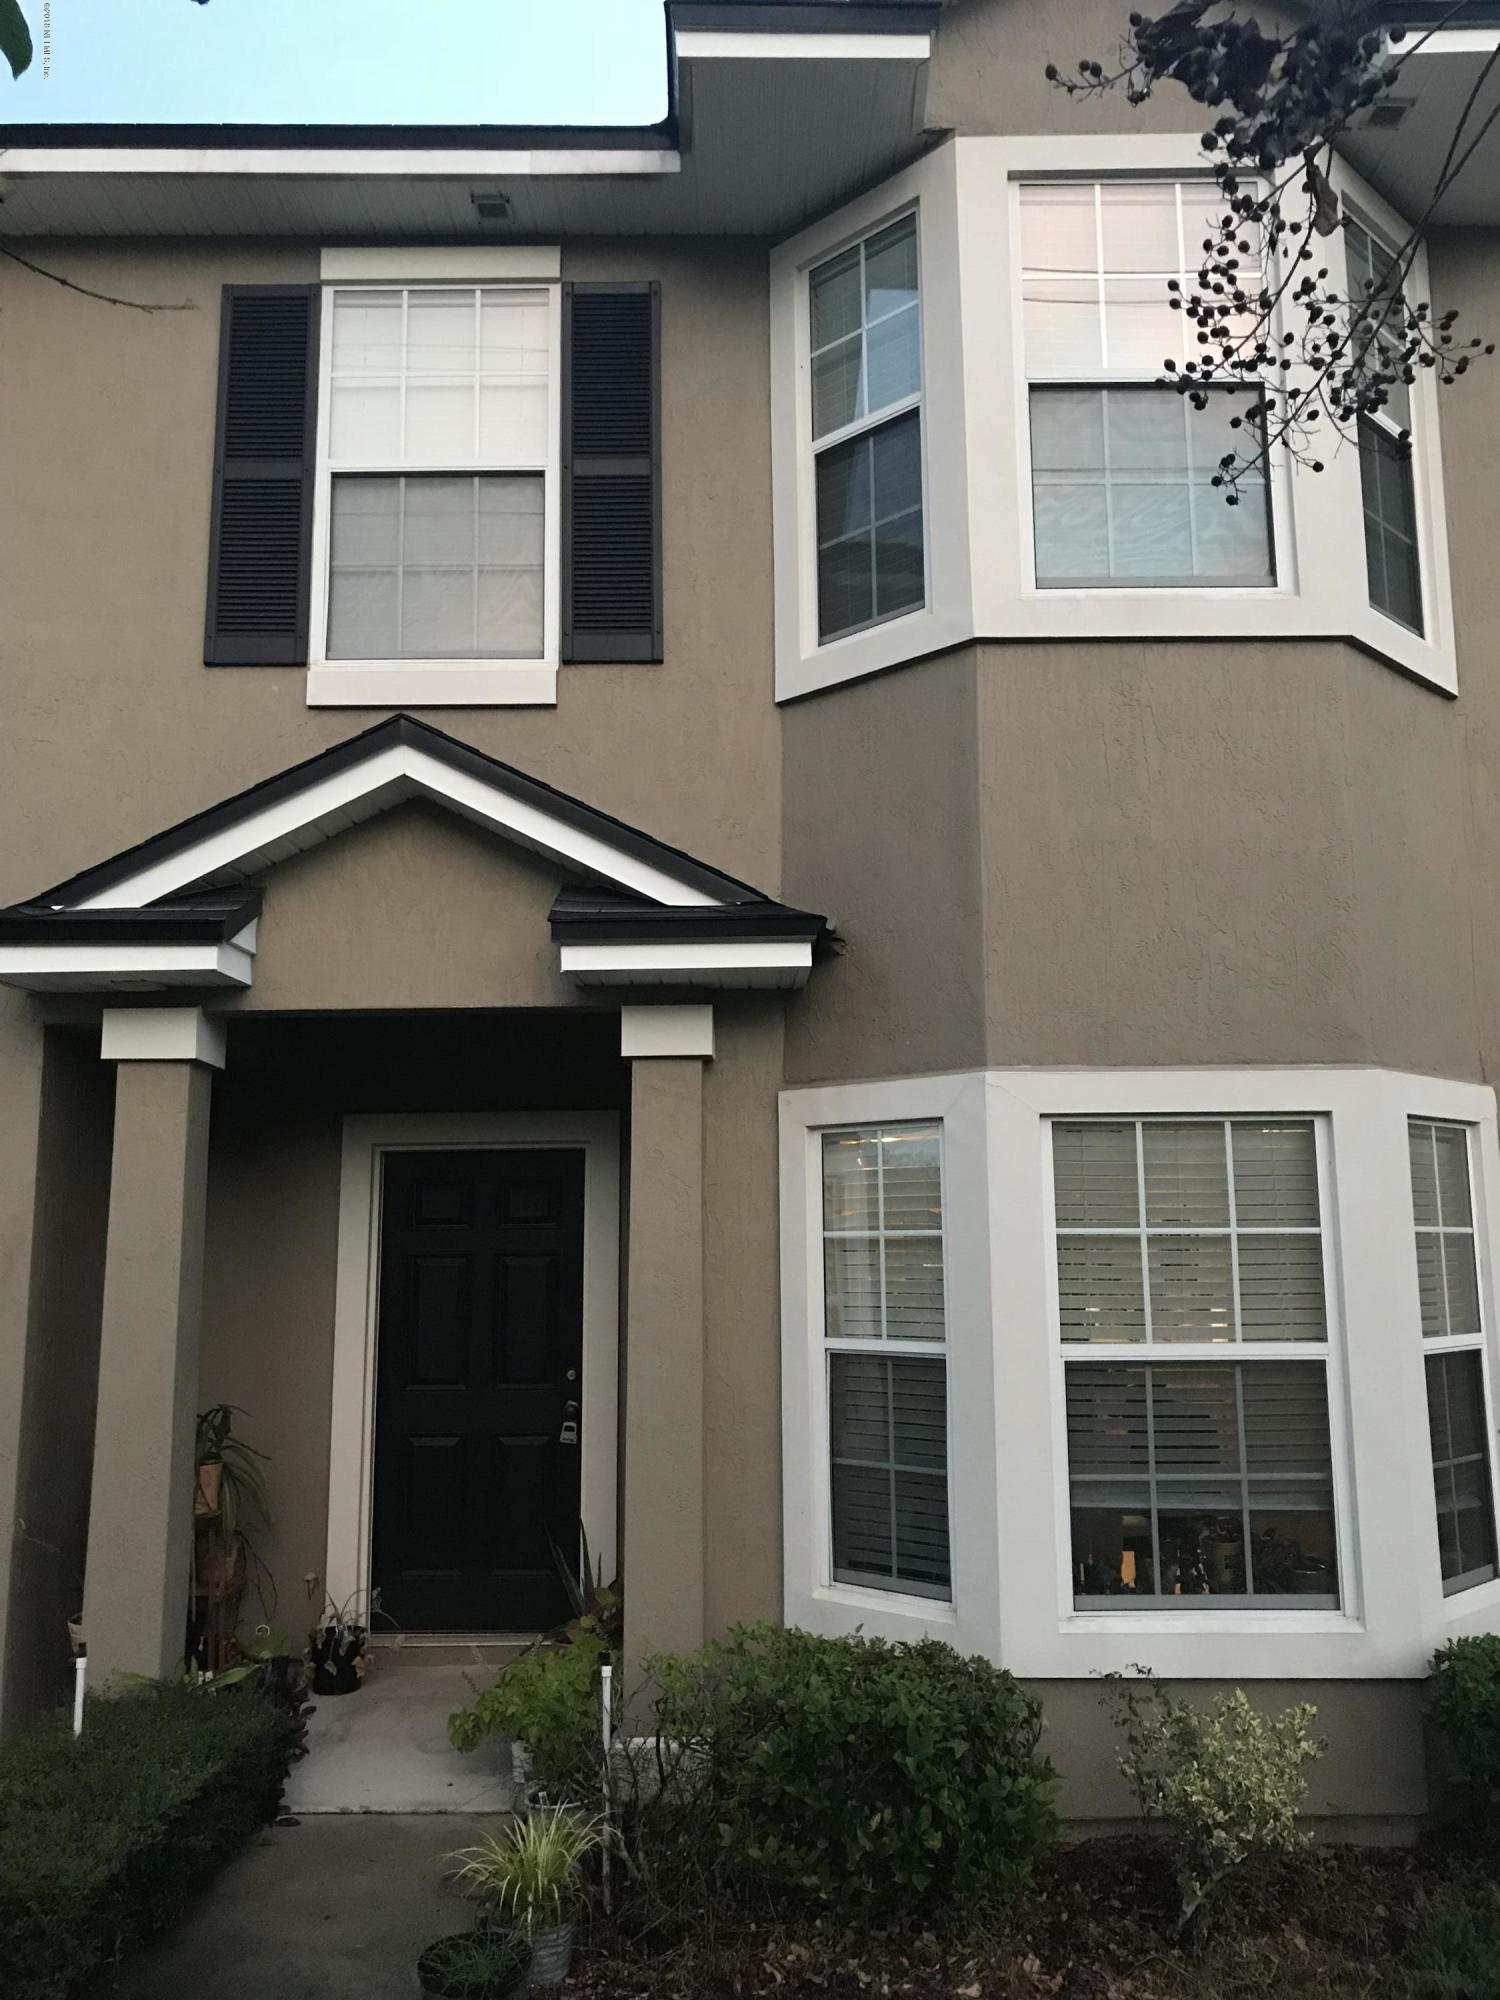 522 SHERWOOD OAKS, ORANGE PARK, FLORIDA 32073, 2 Bedrooms Bedrooms, ,2 BathroomsBathrooms,Residential - condos/townhomes,For sale,SHERWOOD OAKS,960308